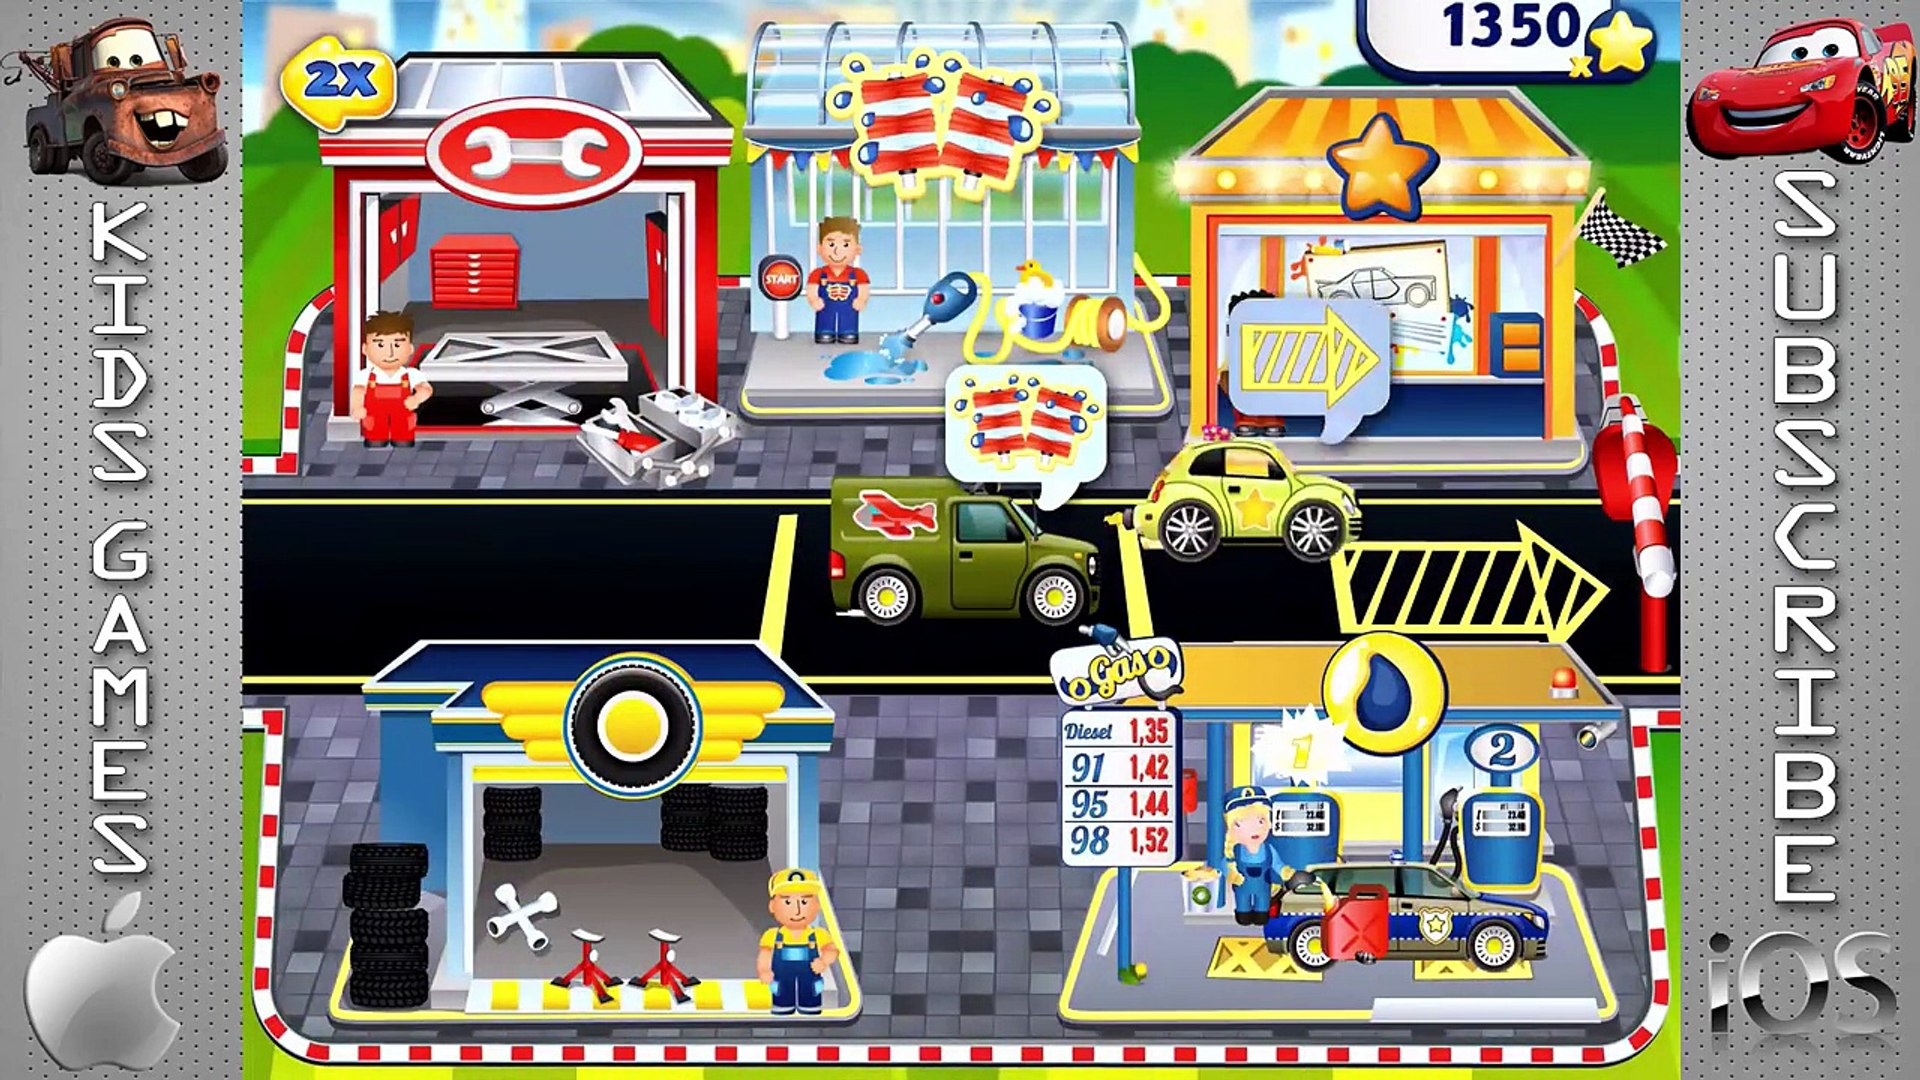 Dream Cars Fory - Service Cars : Police Car, Ambulance, Sports car - Best iOS Game App for Kids